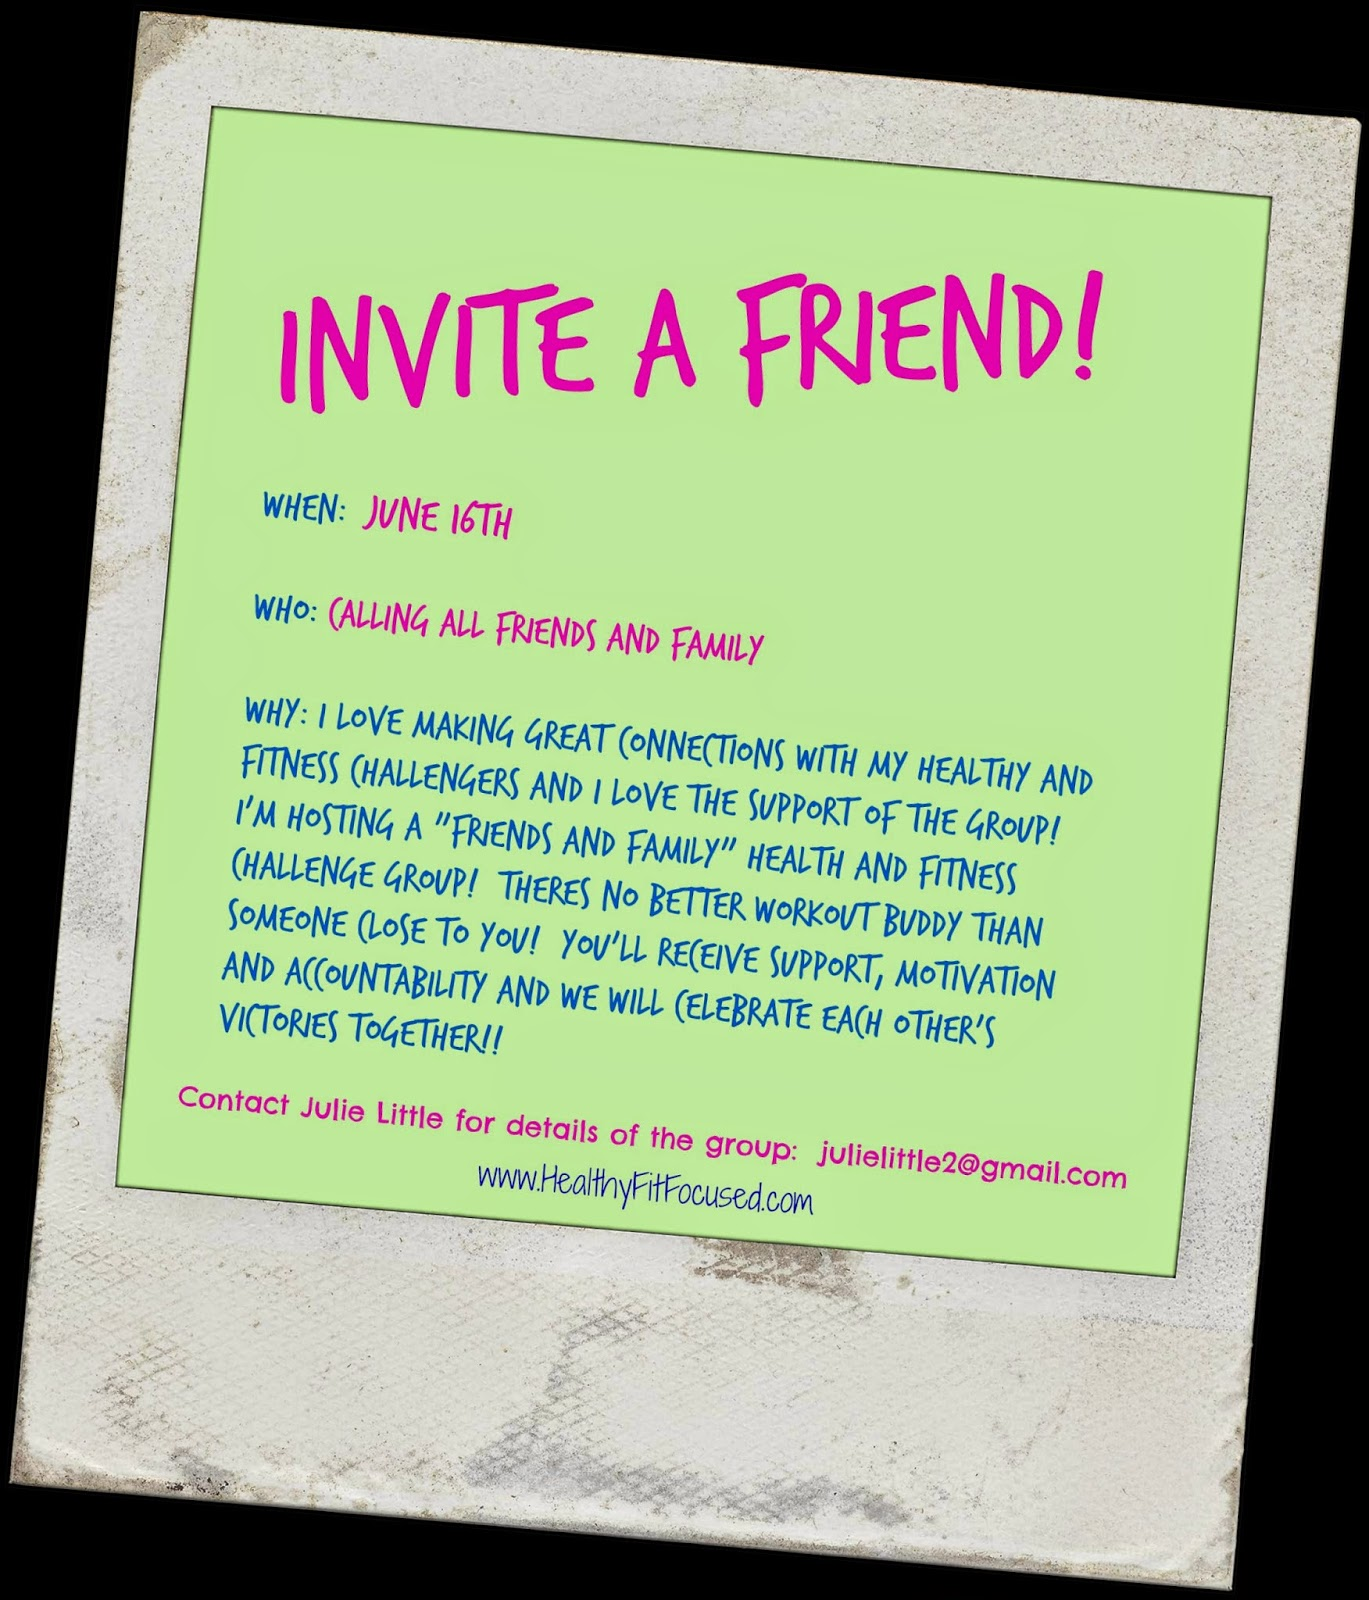 Healthy Fit and Focused Invite a Friend Challenge Group